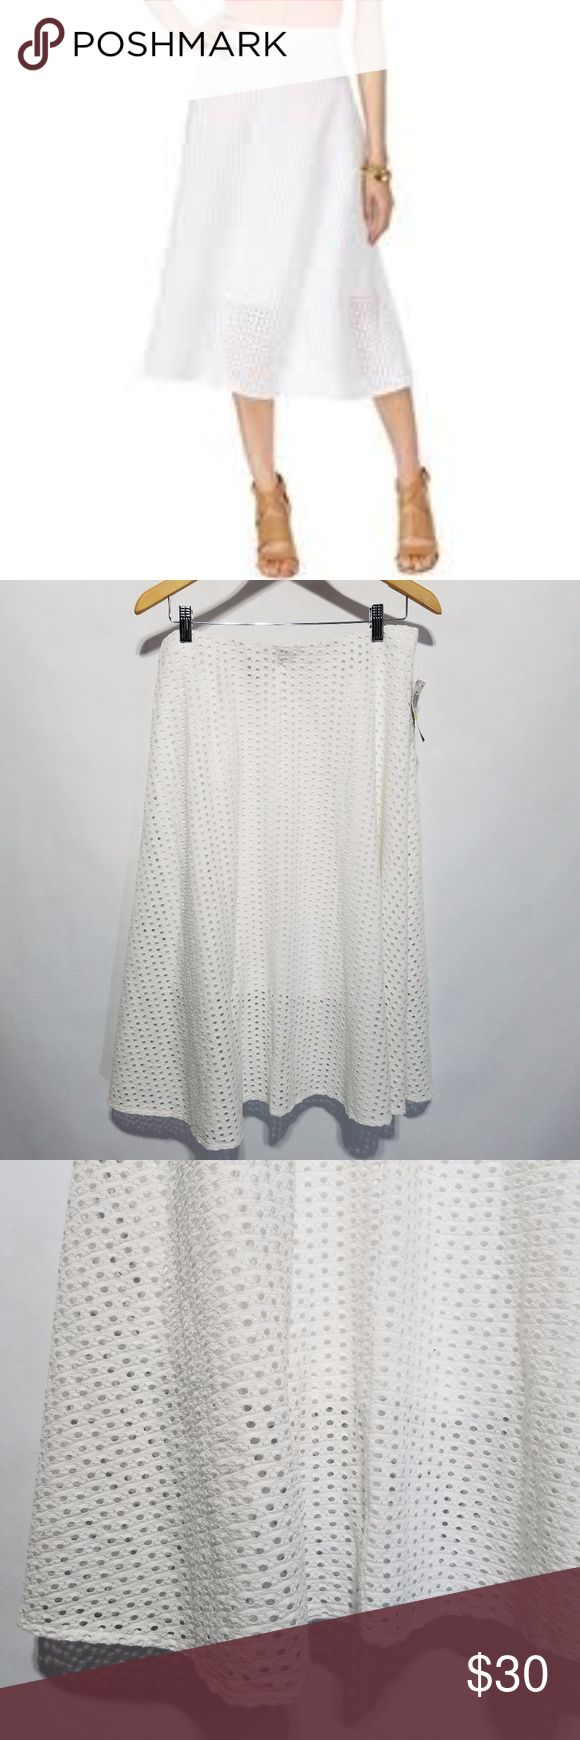 """NWT Alfani White Eyelet Skirt Very stunning white eyelet skirt from Alfani.  Lined but it does not go all the way to the hem as seen in the pictures which gives it a cute effect.  Elastic waist with back silver zipper.  Brand new with tags.  57% Cotton 38% Rayon 5% Spandex  15"""" Waist 27"""" Length Alfani Skirts Midi"""